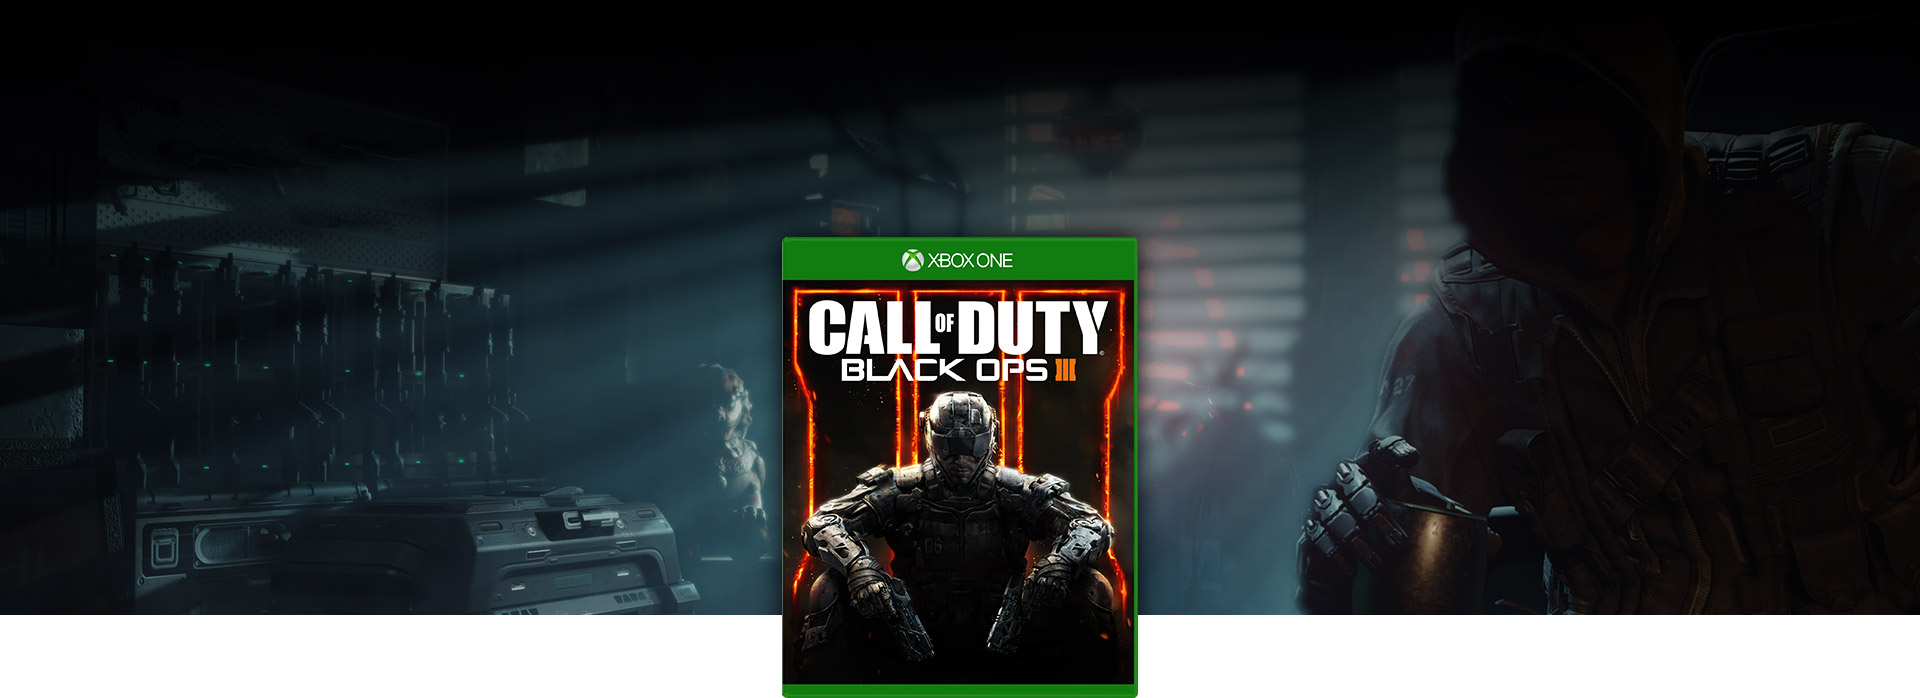 Call of Duty 3 boxshot with character sitting in a room in the background